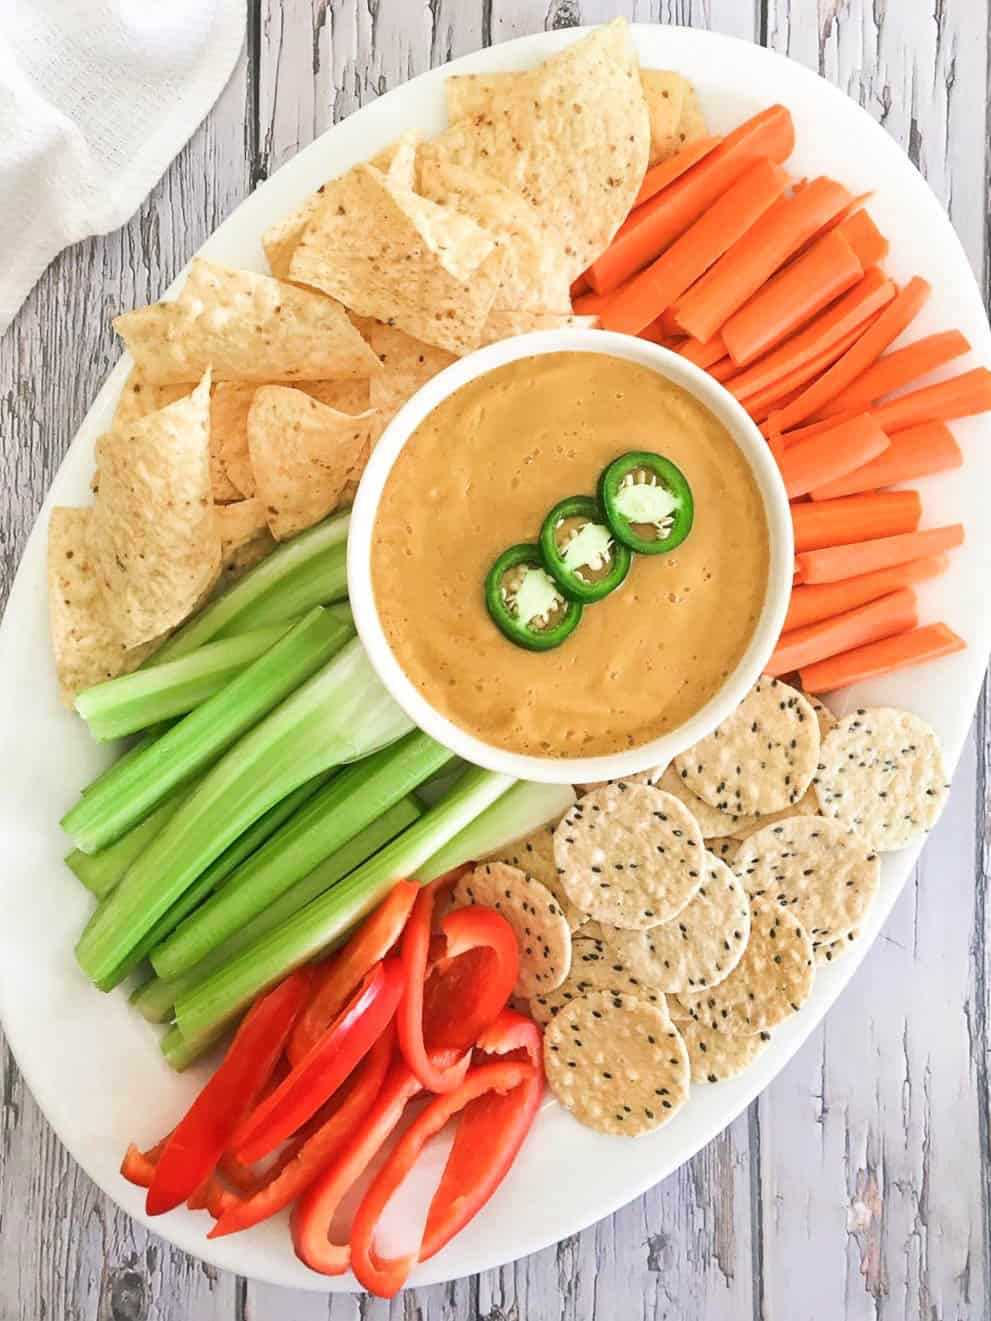 Platter with carrots, peppers, celery, chips and crackers and dip in the middle.